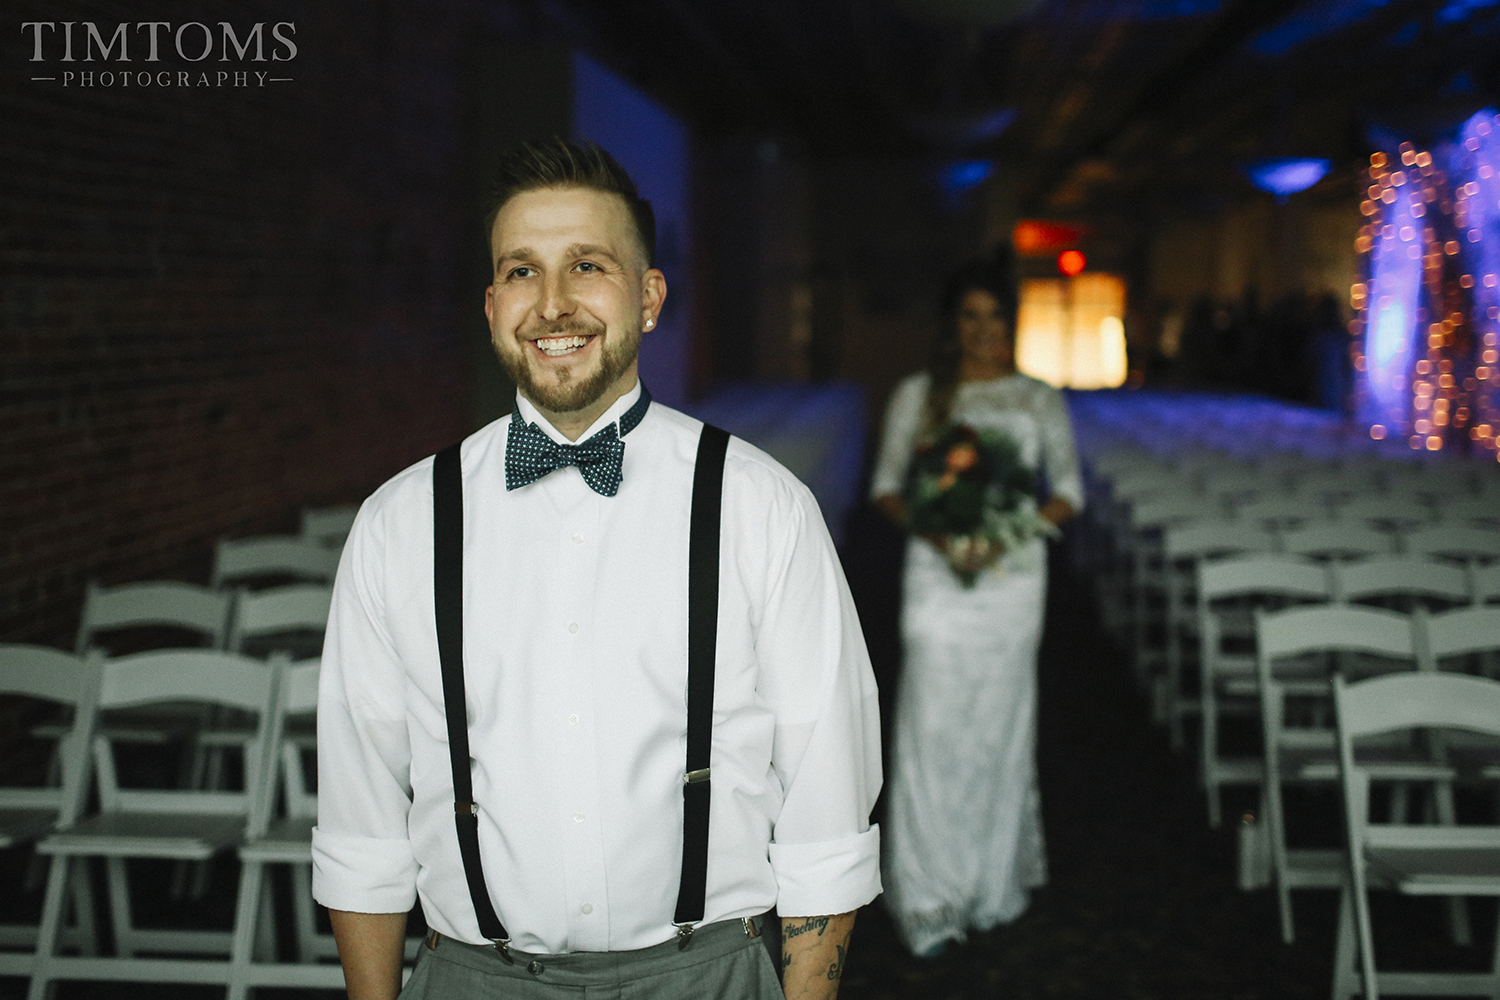 Wedding Photography bride groom first look reveal